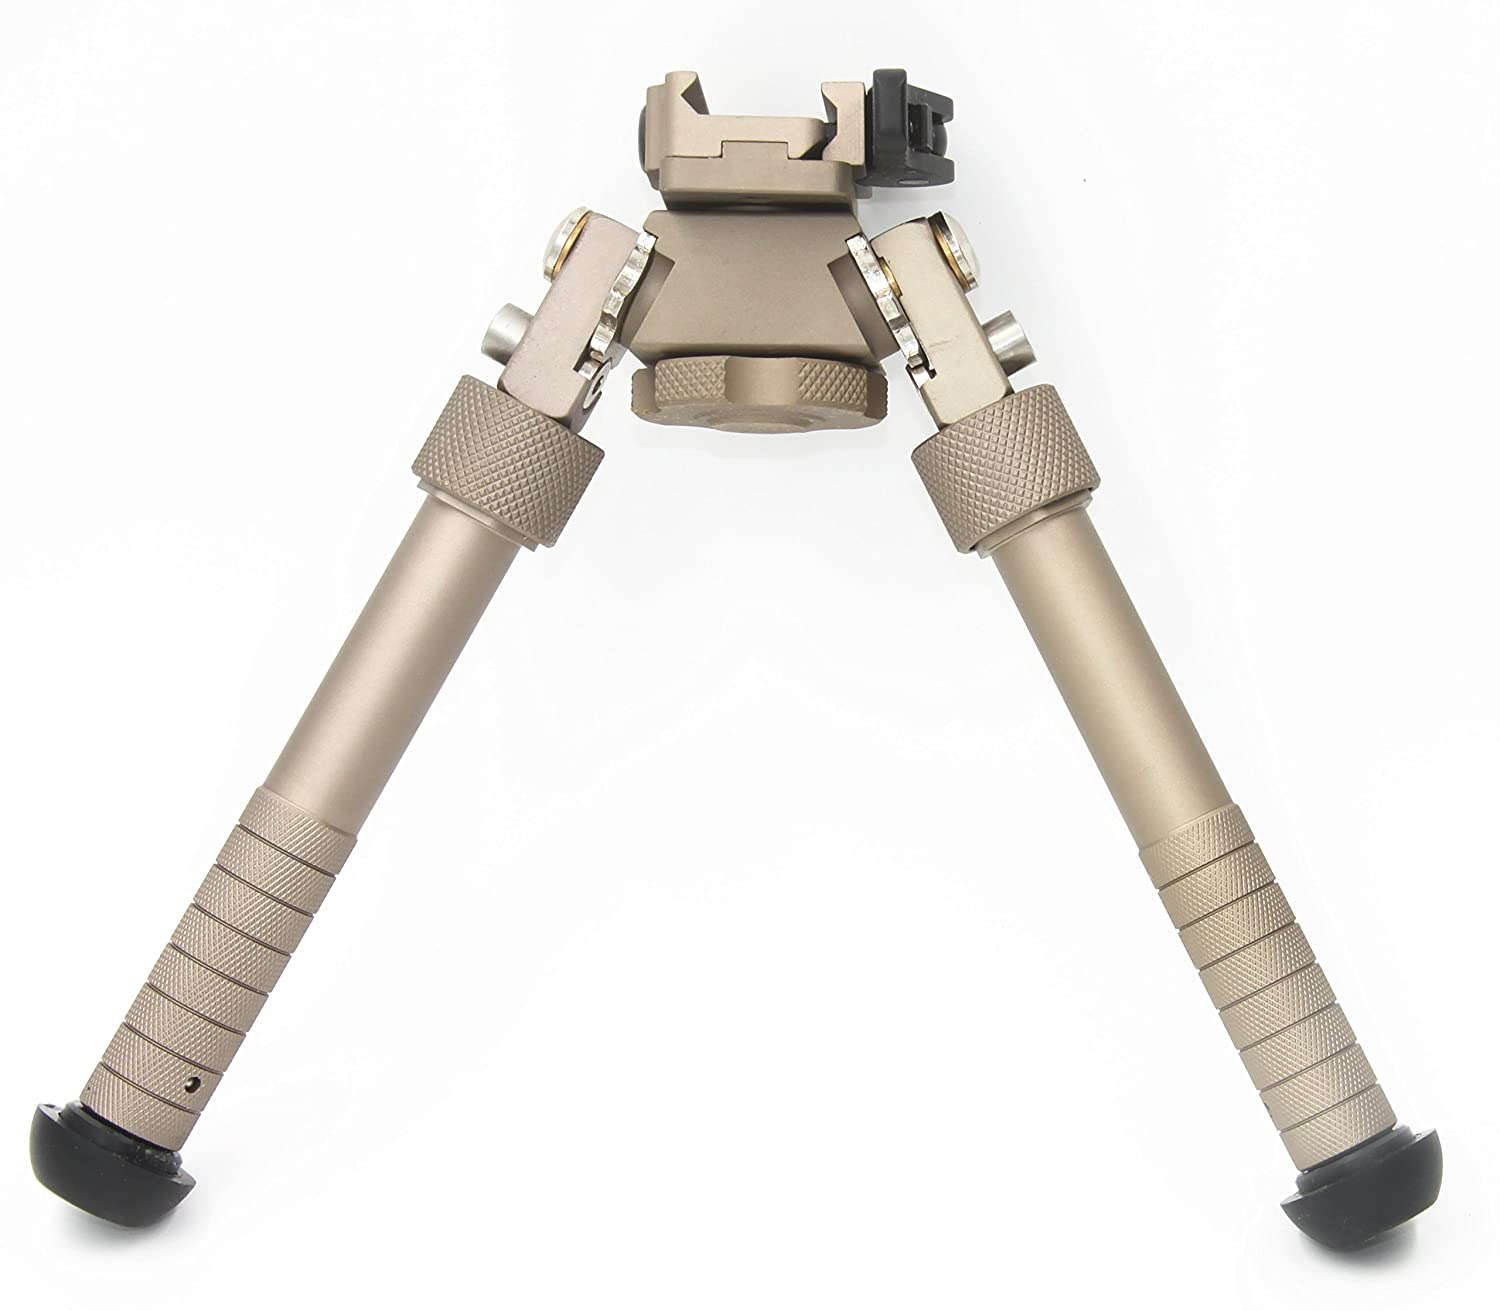 jinse schwenken Tactical BIPOD deux jambes Support Super Duty repliable réglable 6 à 9  99C